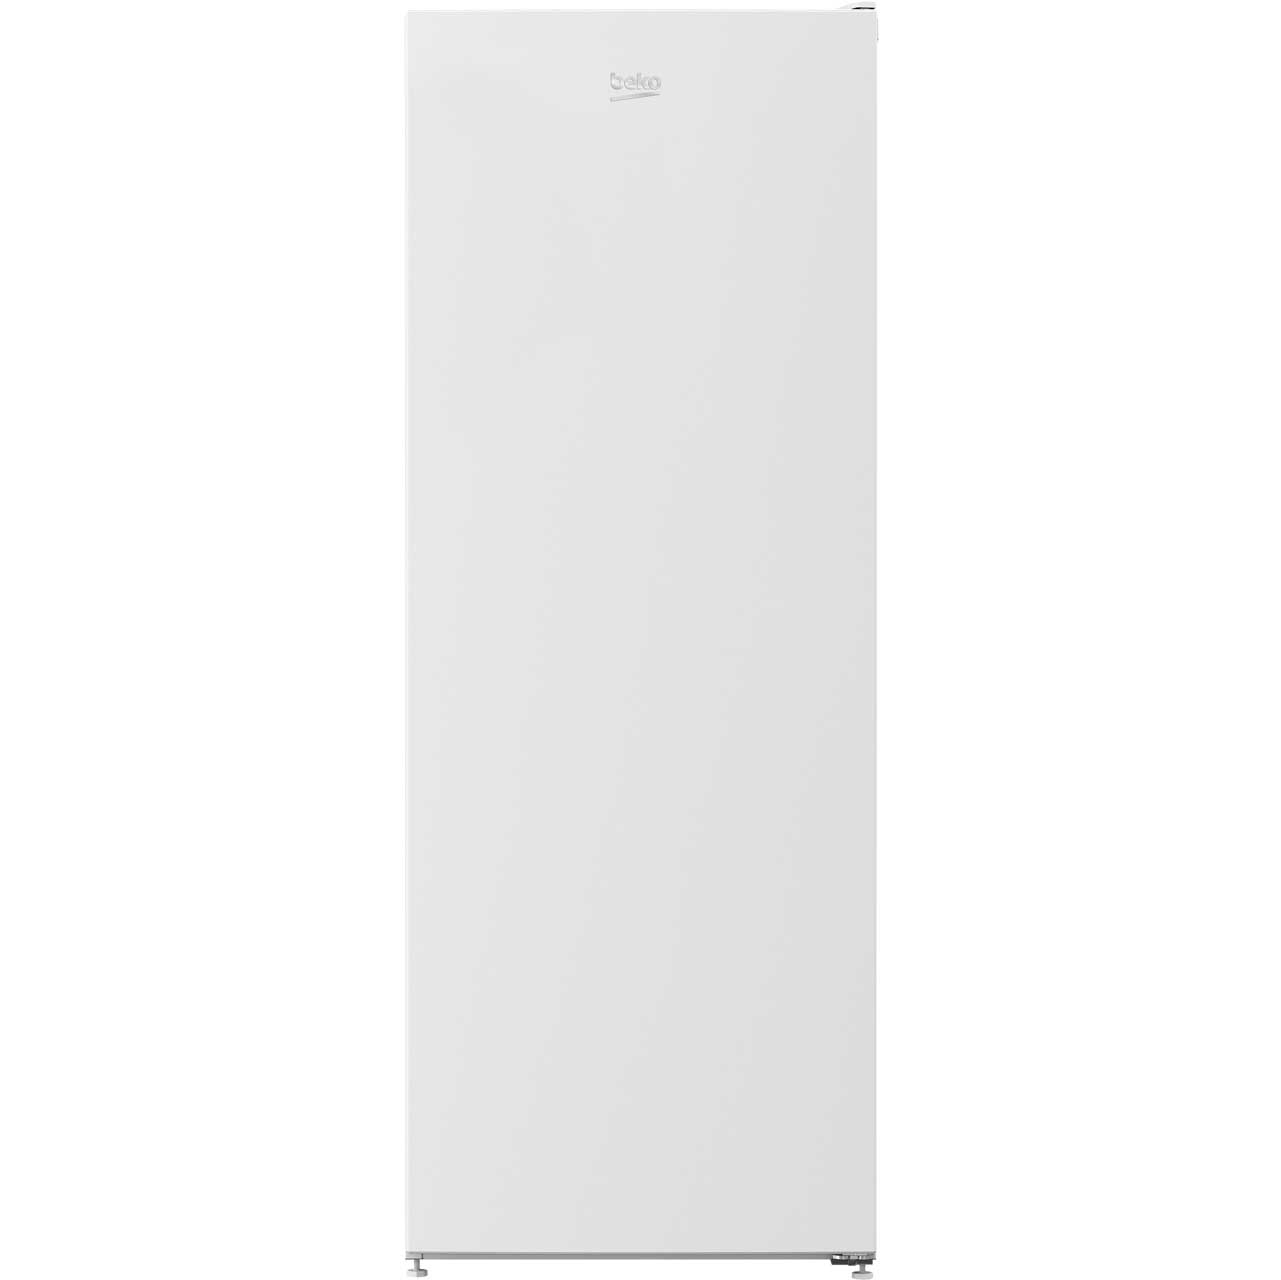 Beko LSG1545W Free Standing Larder Fridge in White